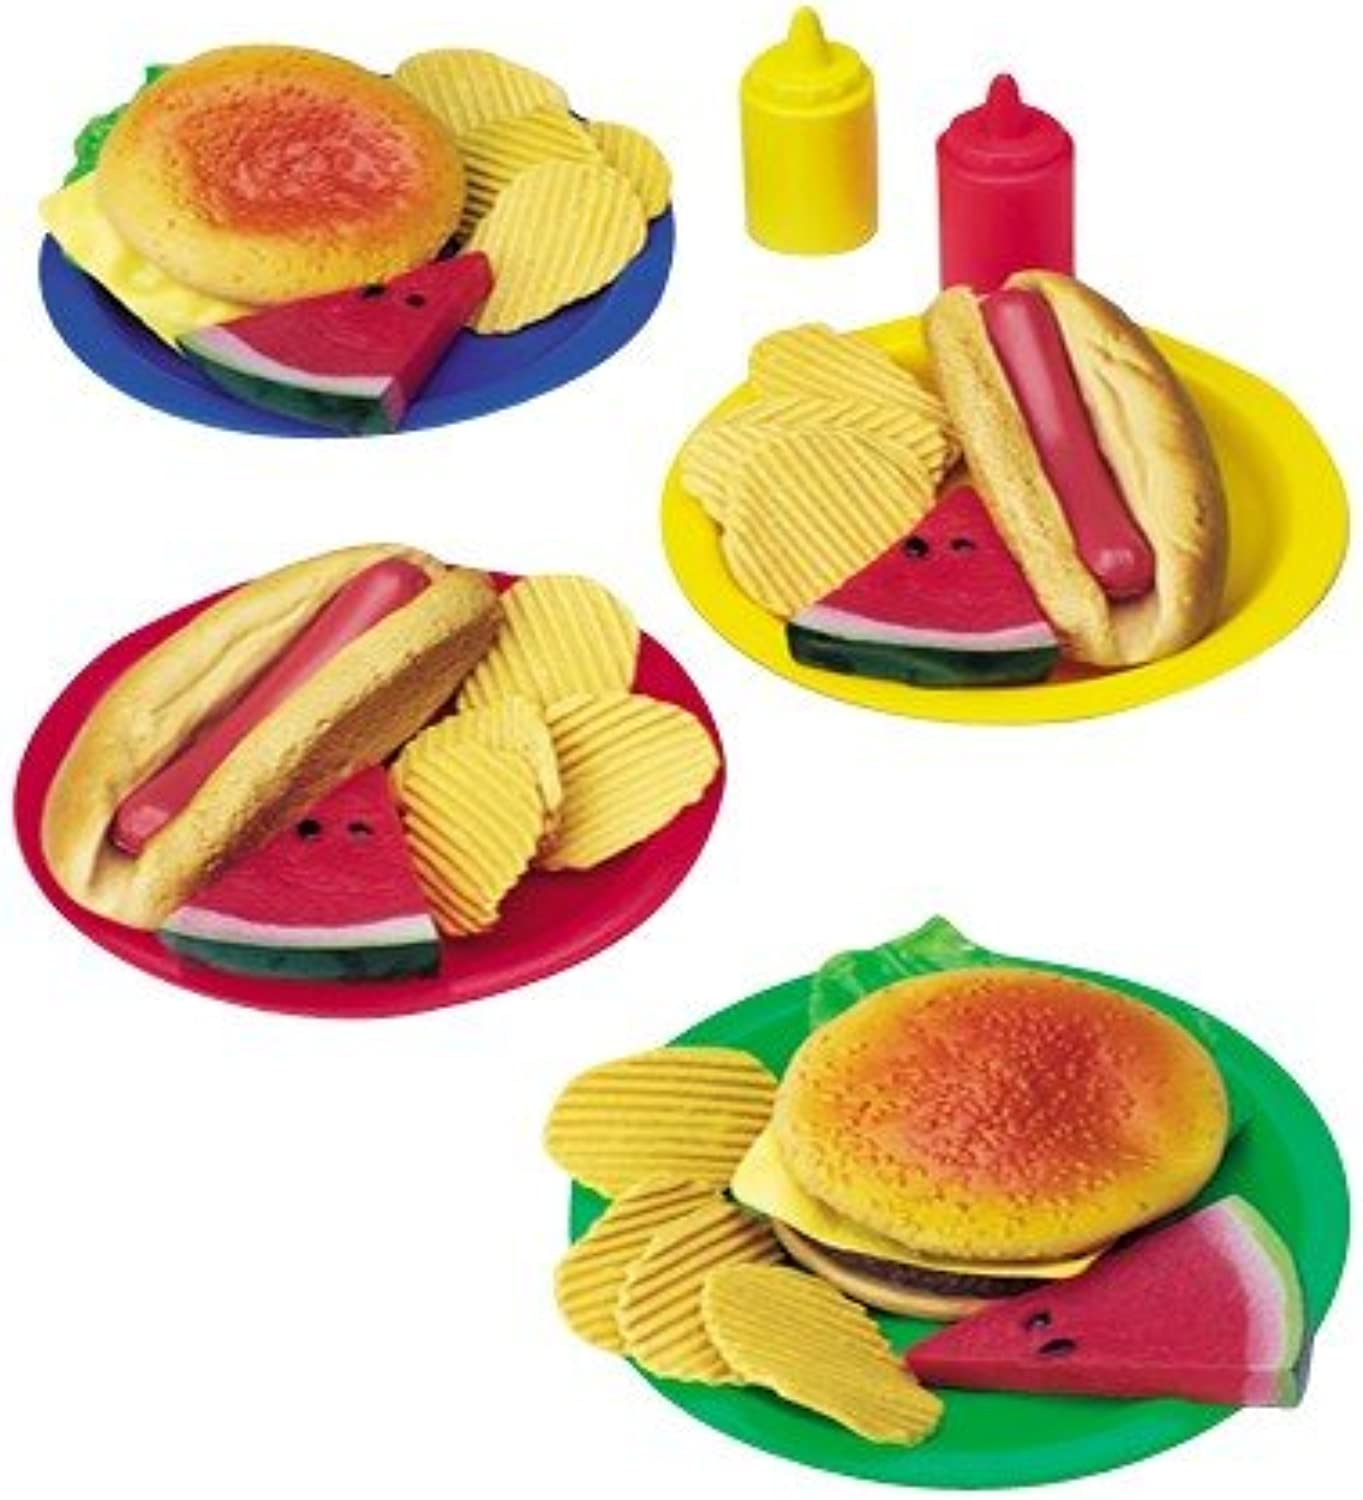 Constructive Playthings BBQ Lunch For Four Playset  Realistic Vinyl Pretend Food  32 Individual Pieces  Ages 3+